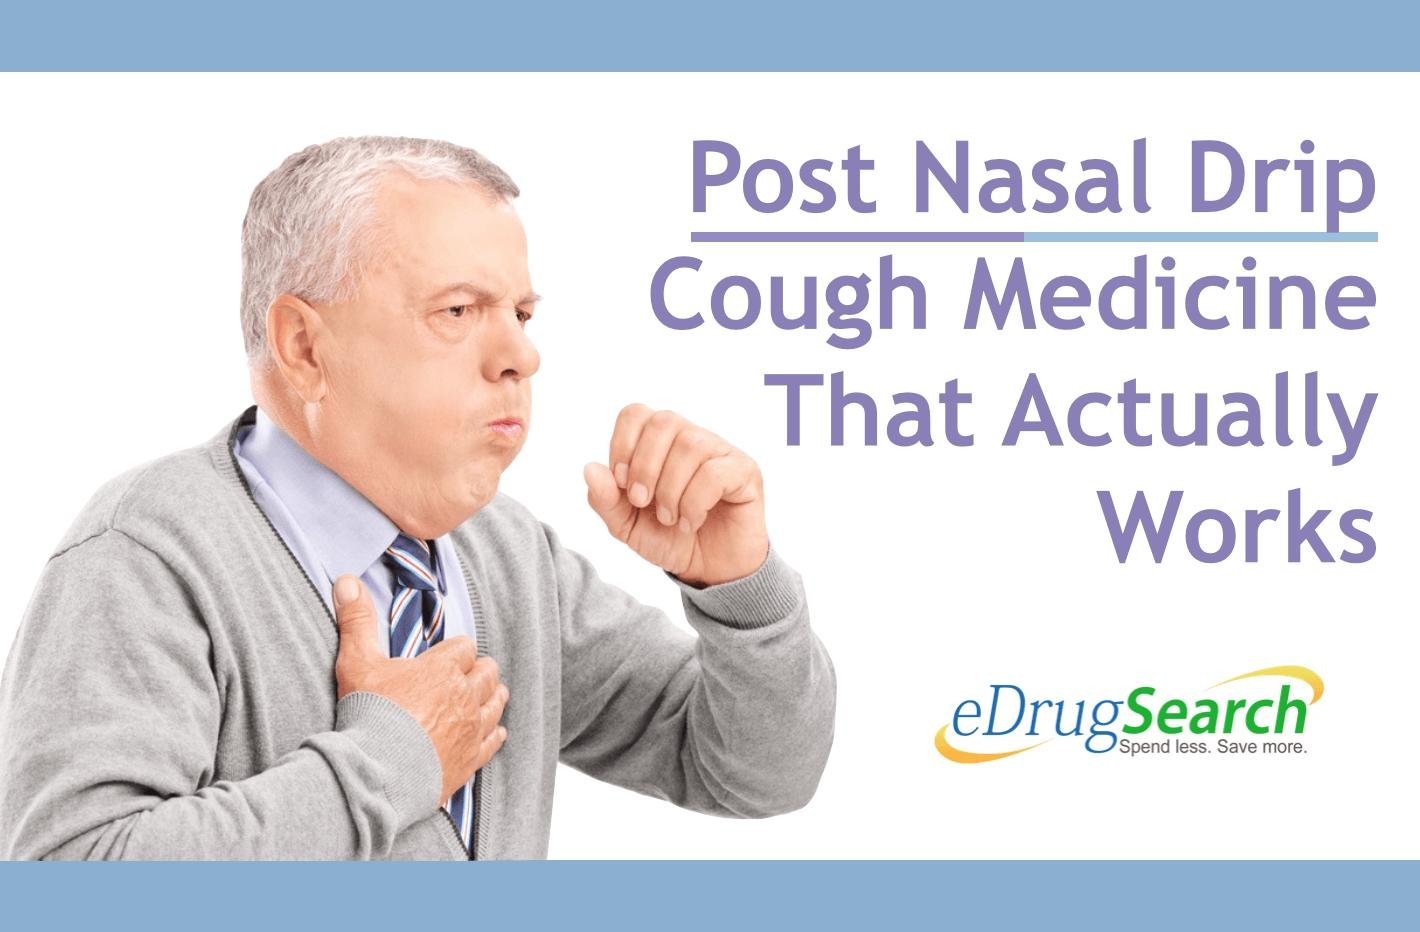 Post Nasal Drip Cough Medicine That Actually Works